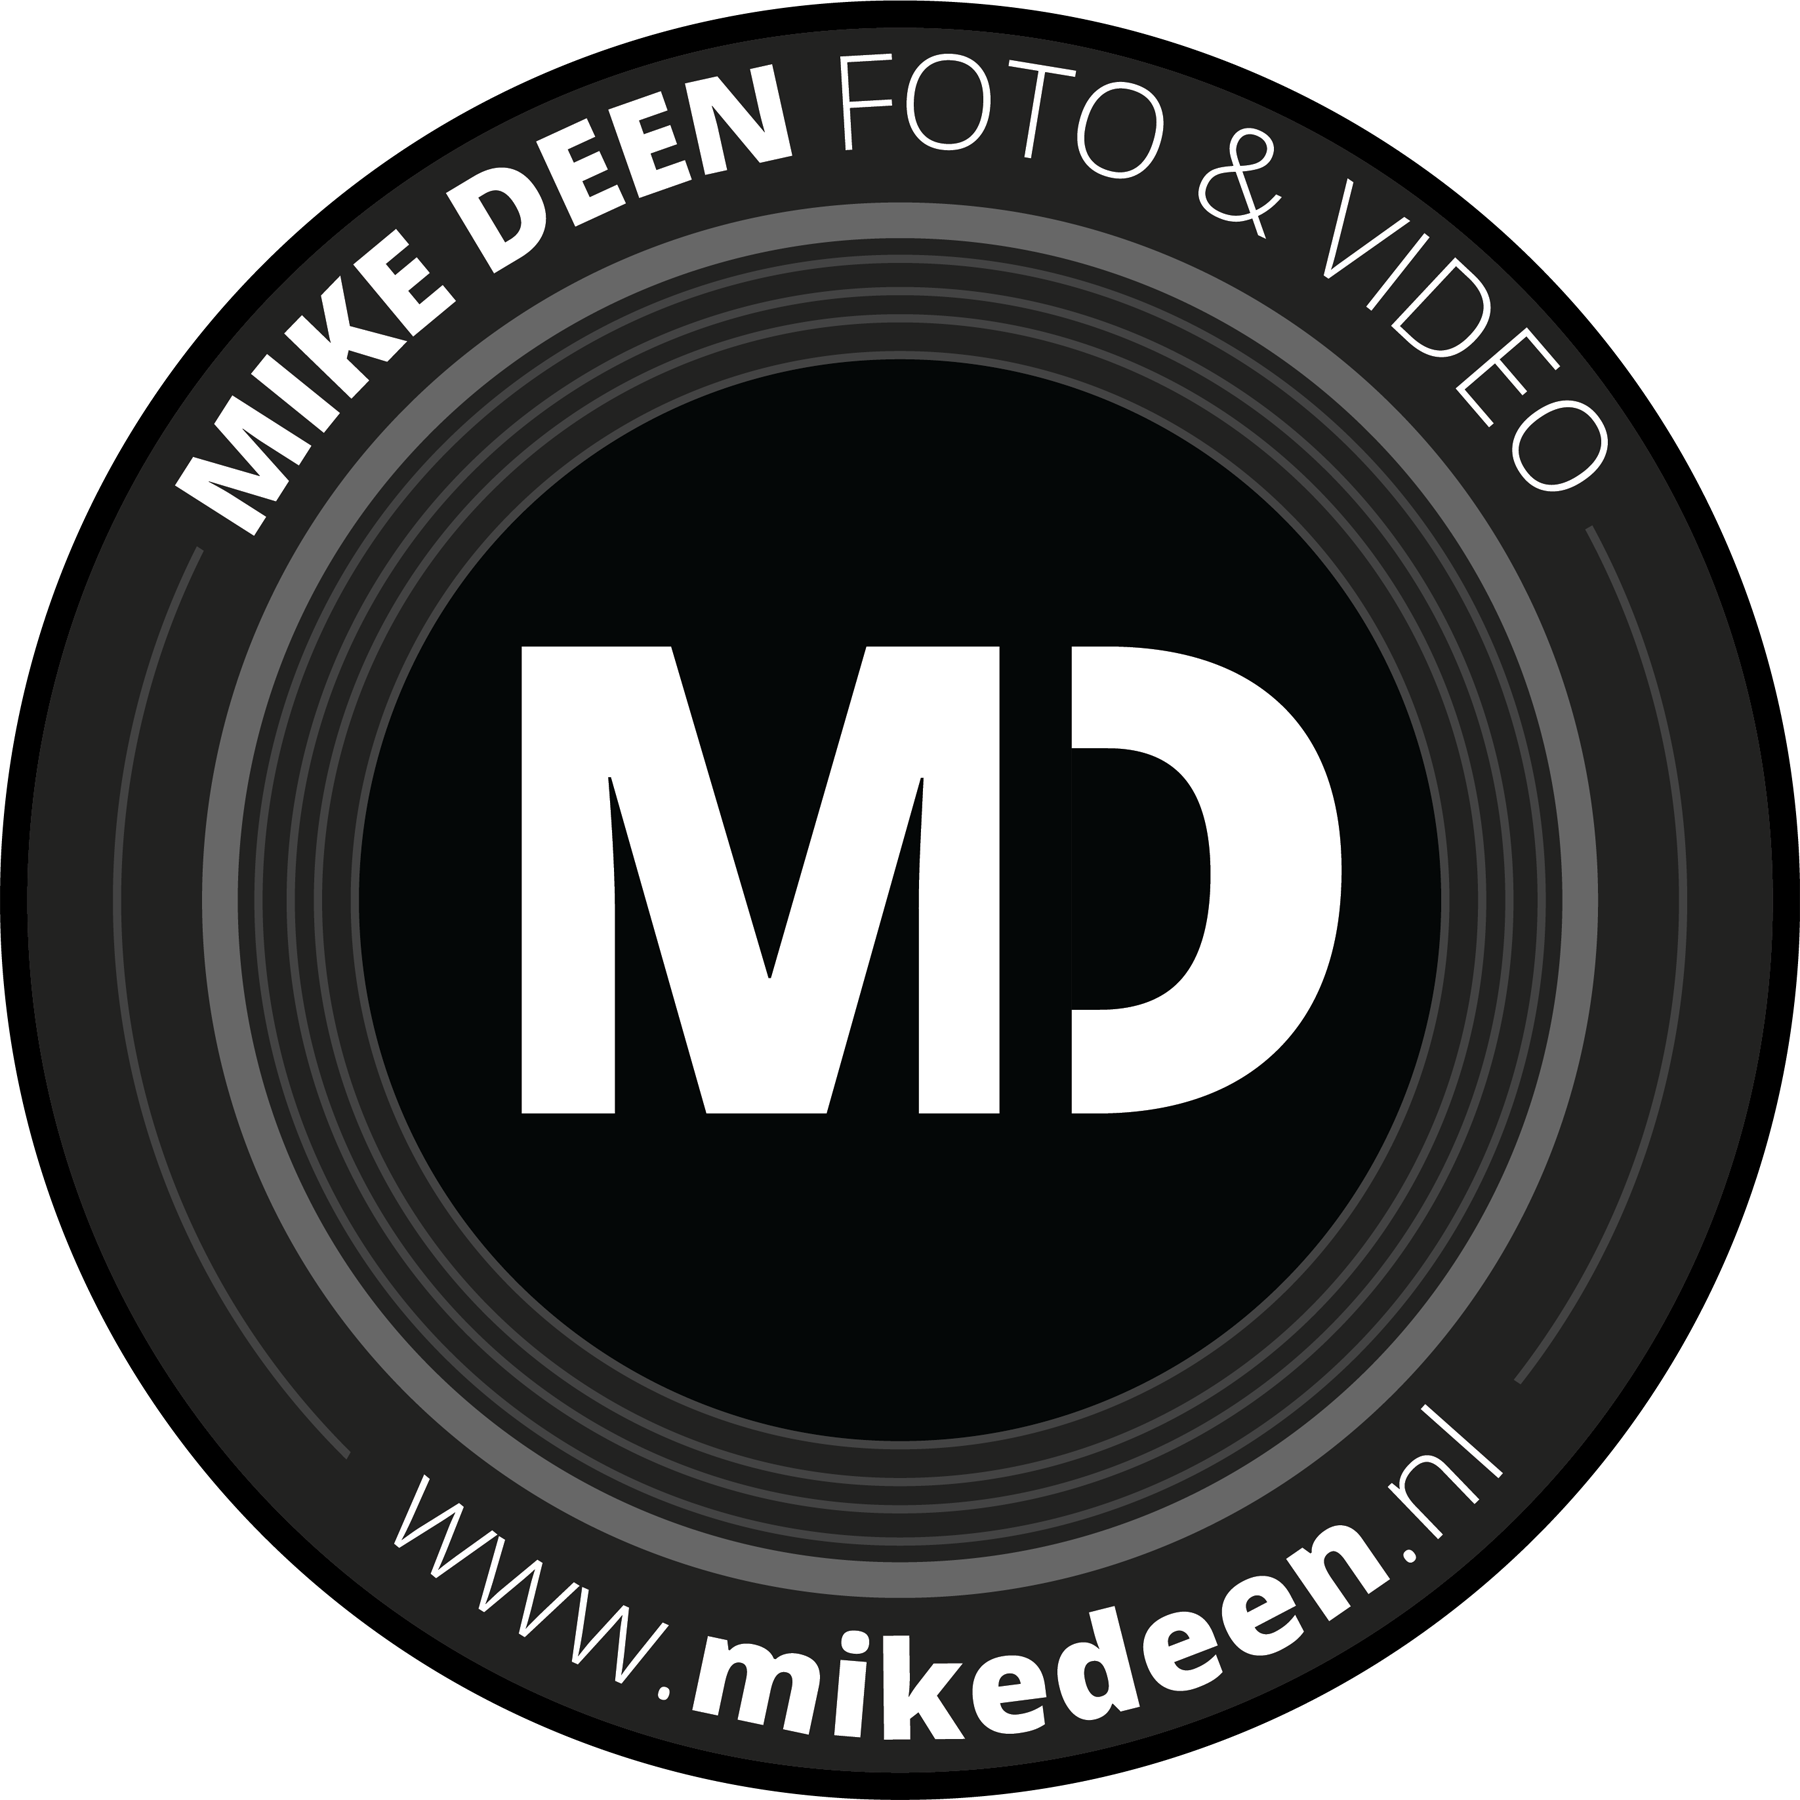 Mike Deen Foto & Video